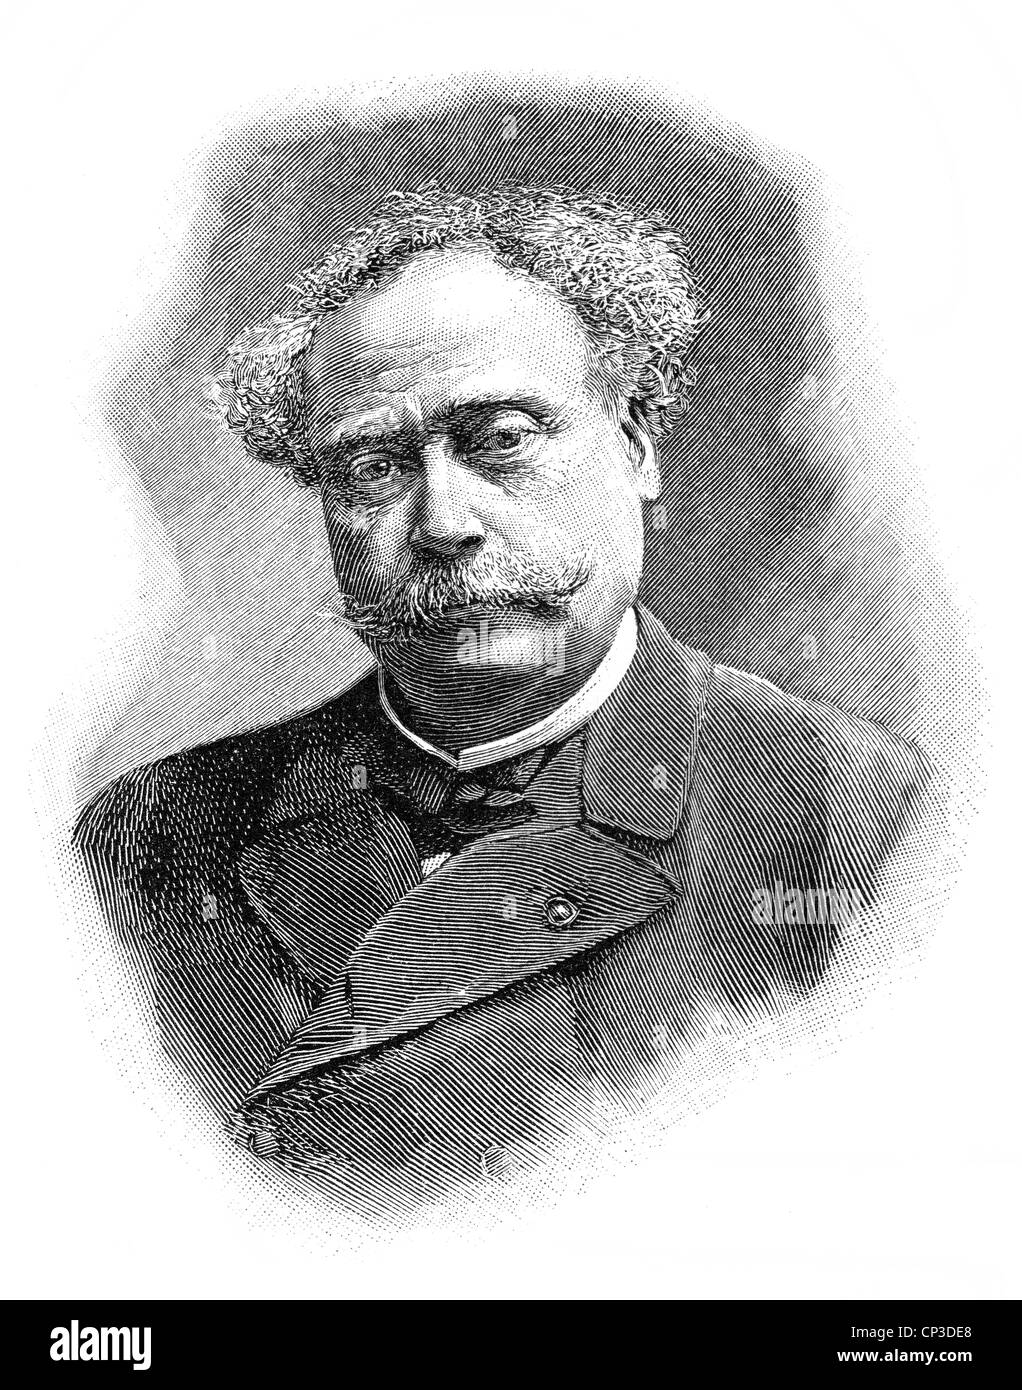 a short biography of alexandre dumas a french playwright Balzac was a french novelist and playwright alexandre dumas is considered the most widely read french author in history he is known for historical novels that chronicle the wild adventures of his characters.